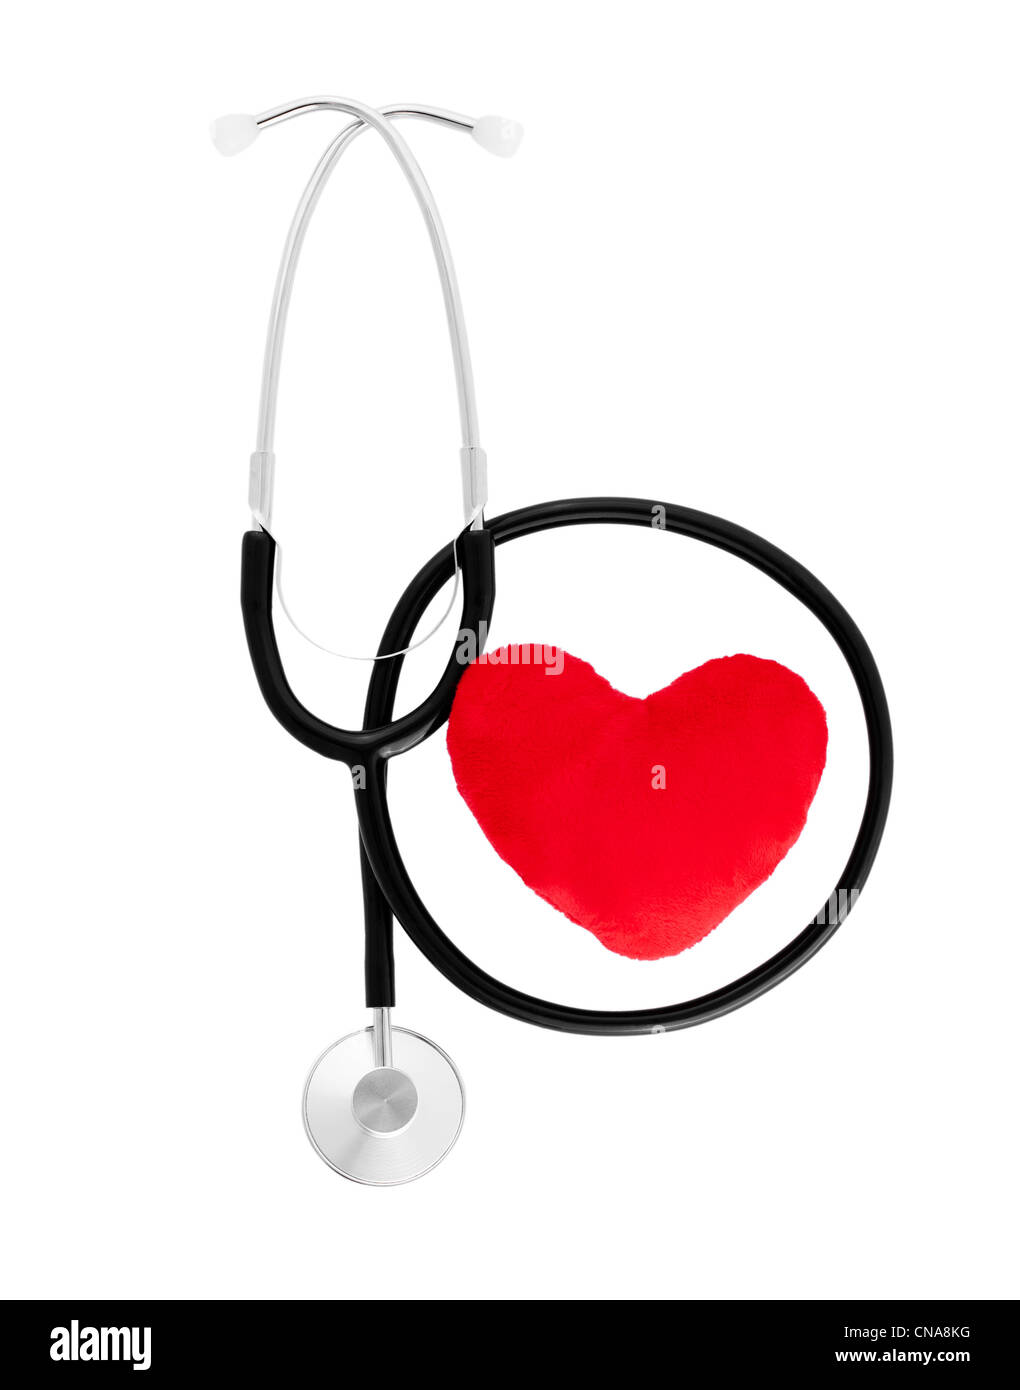 Heart with stethoscope - Stock Image